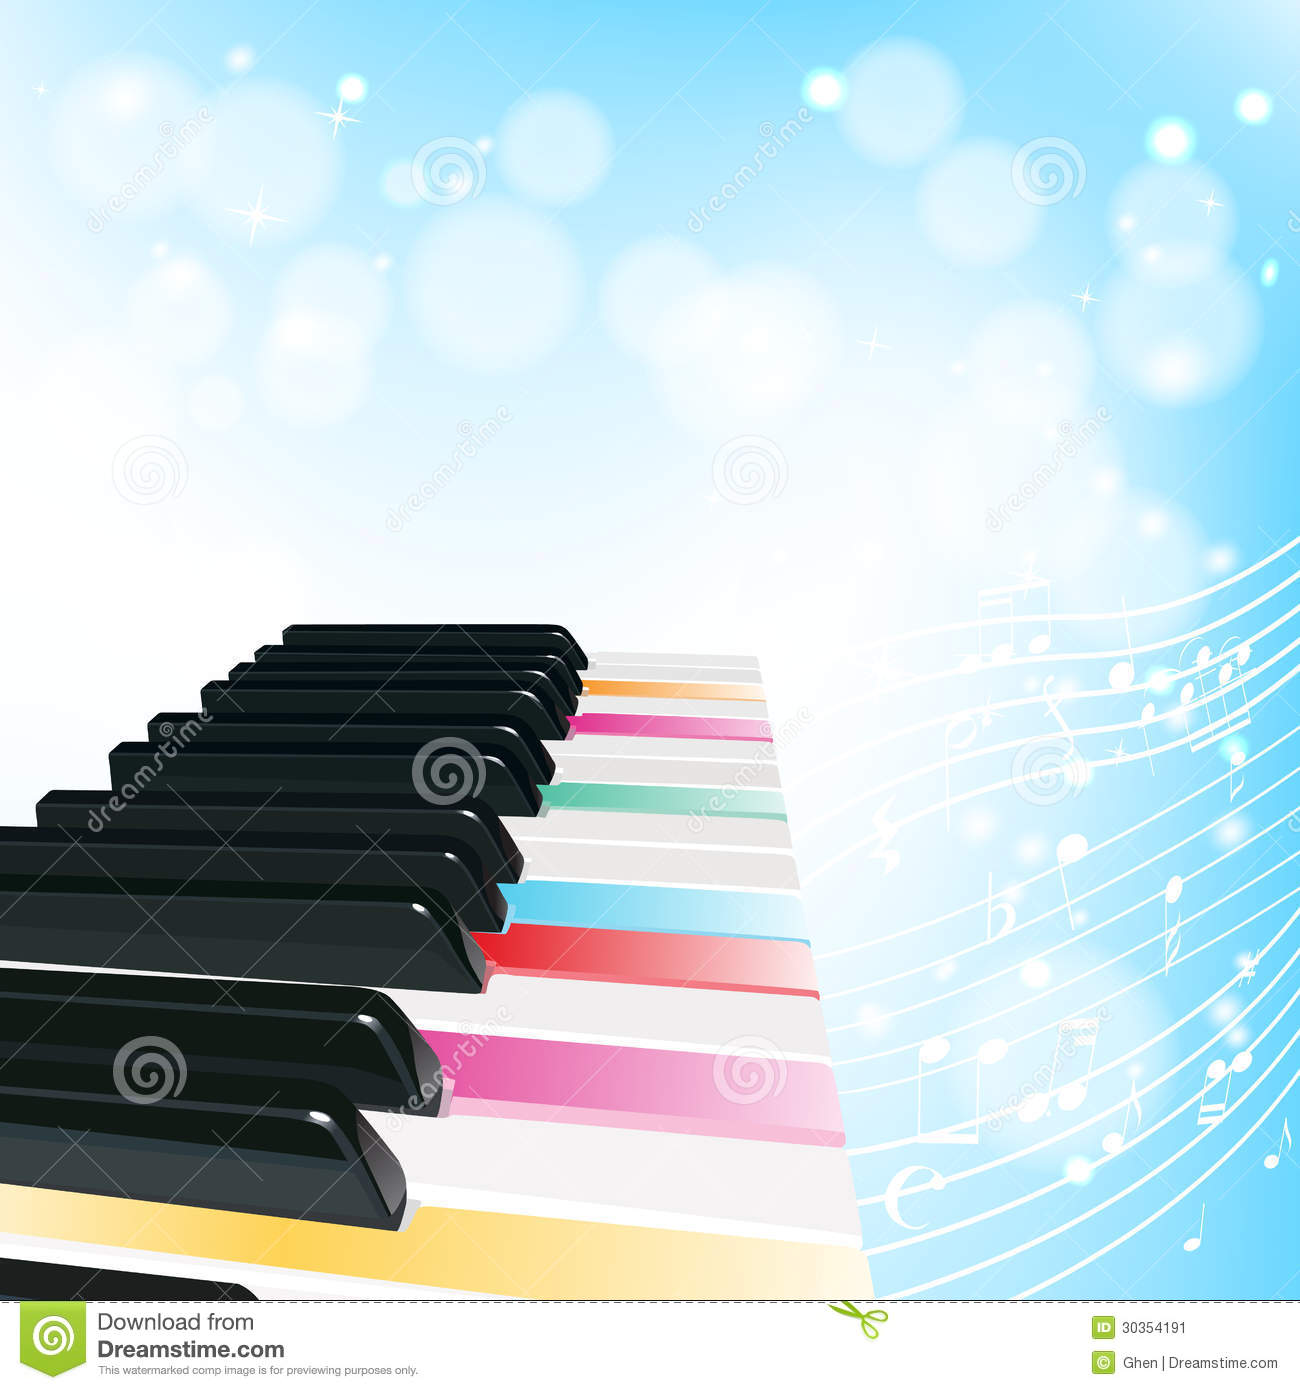 Piano Background With Notes Stock Image - Image: 30354191